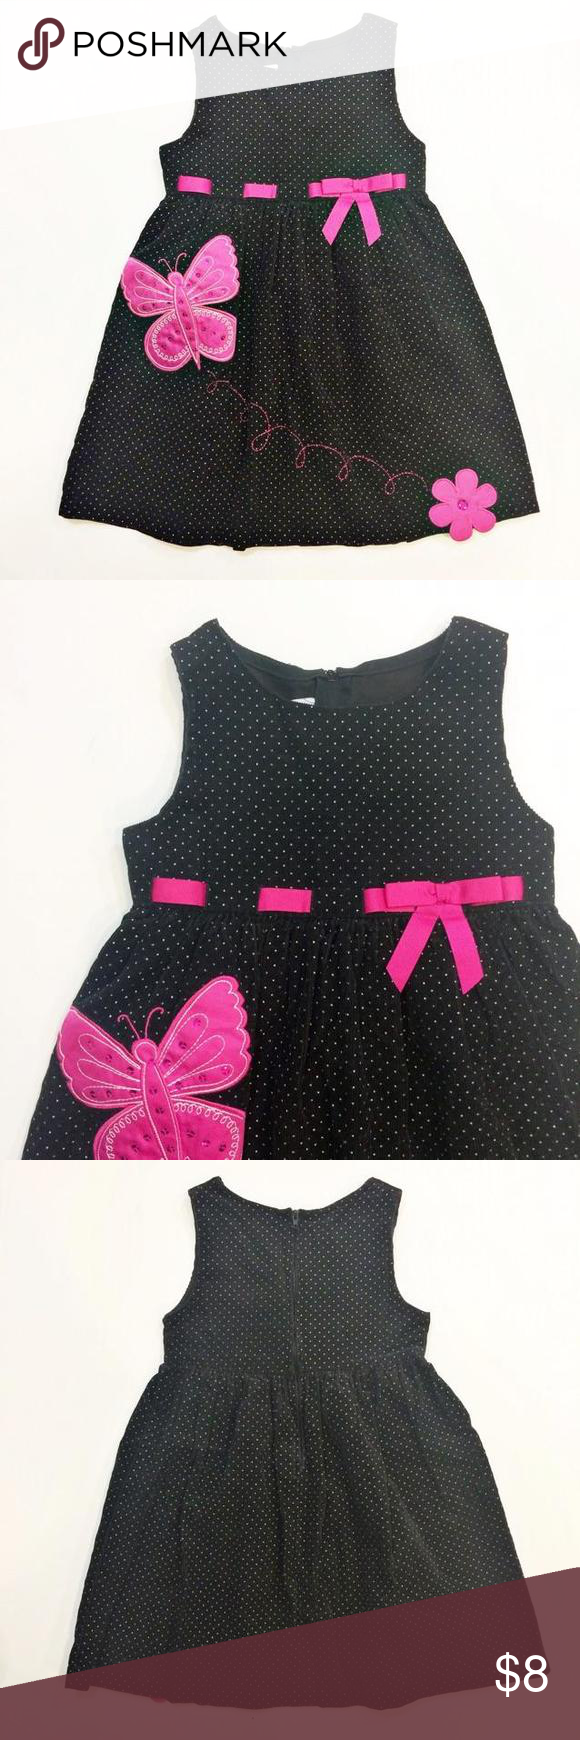 71ea7df5d15 Bonnie Jean Cord Butterfly Dress This beautiful black corduroy dress with  white polkadots from Bonnie Jean has satin butterfly appliqués and a pink  ribbon ...